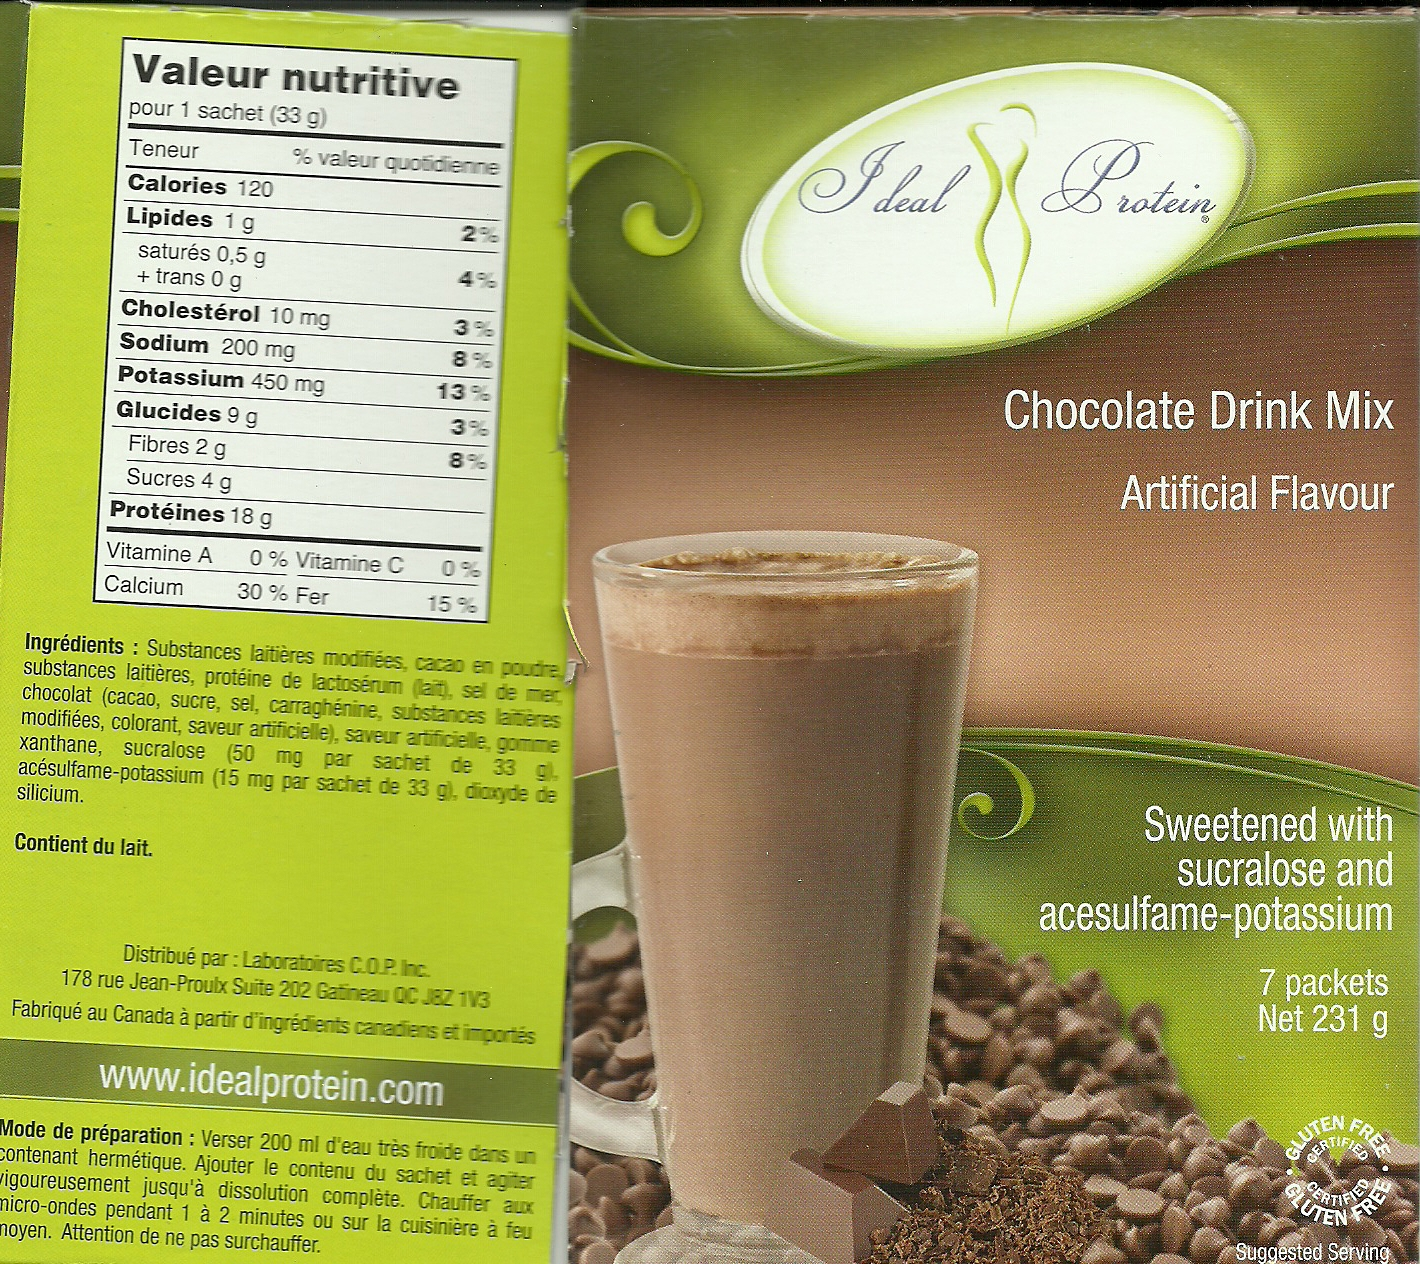 Ideal Protein Chocolate Drink Mix Nutrition Facts